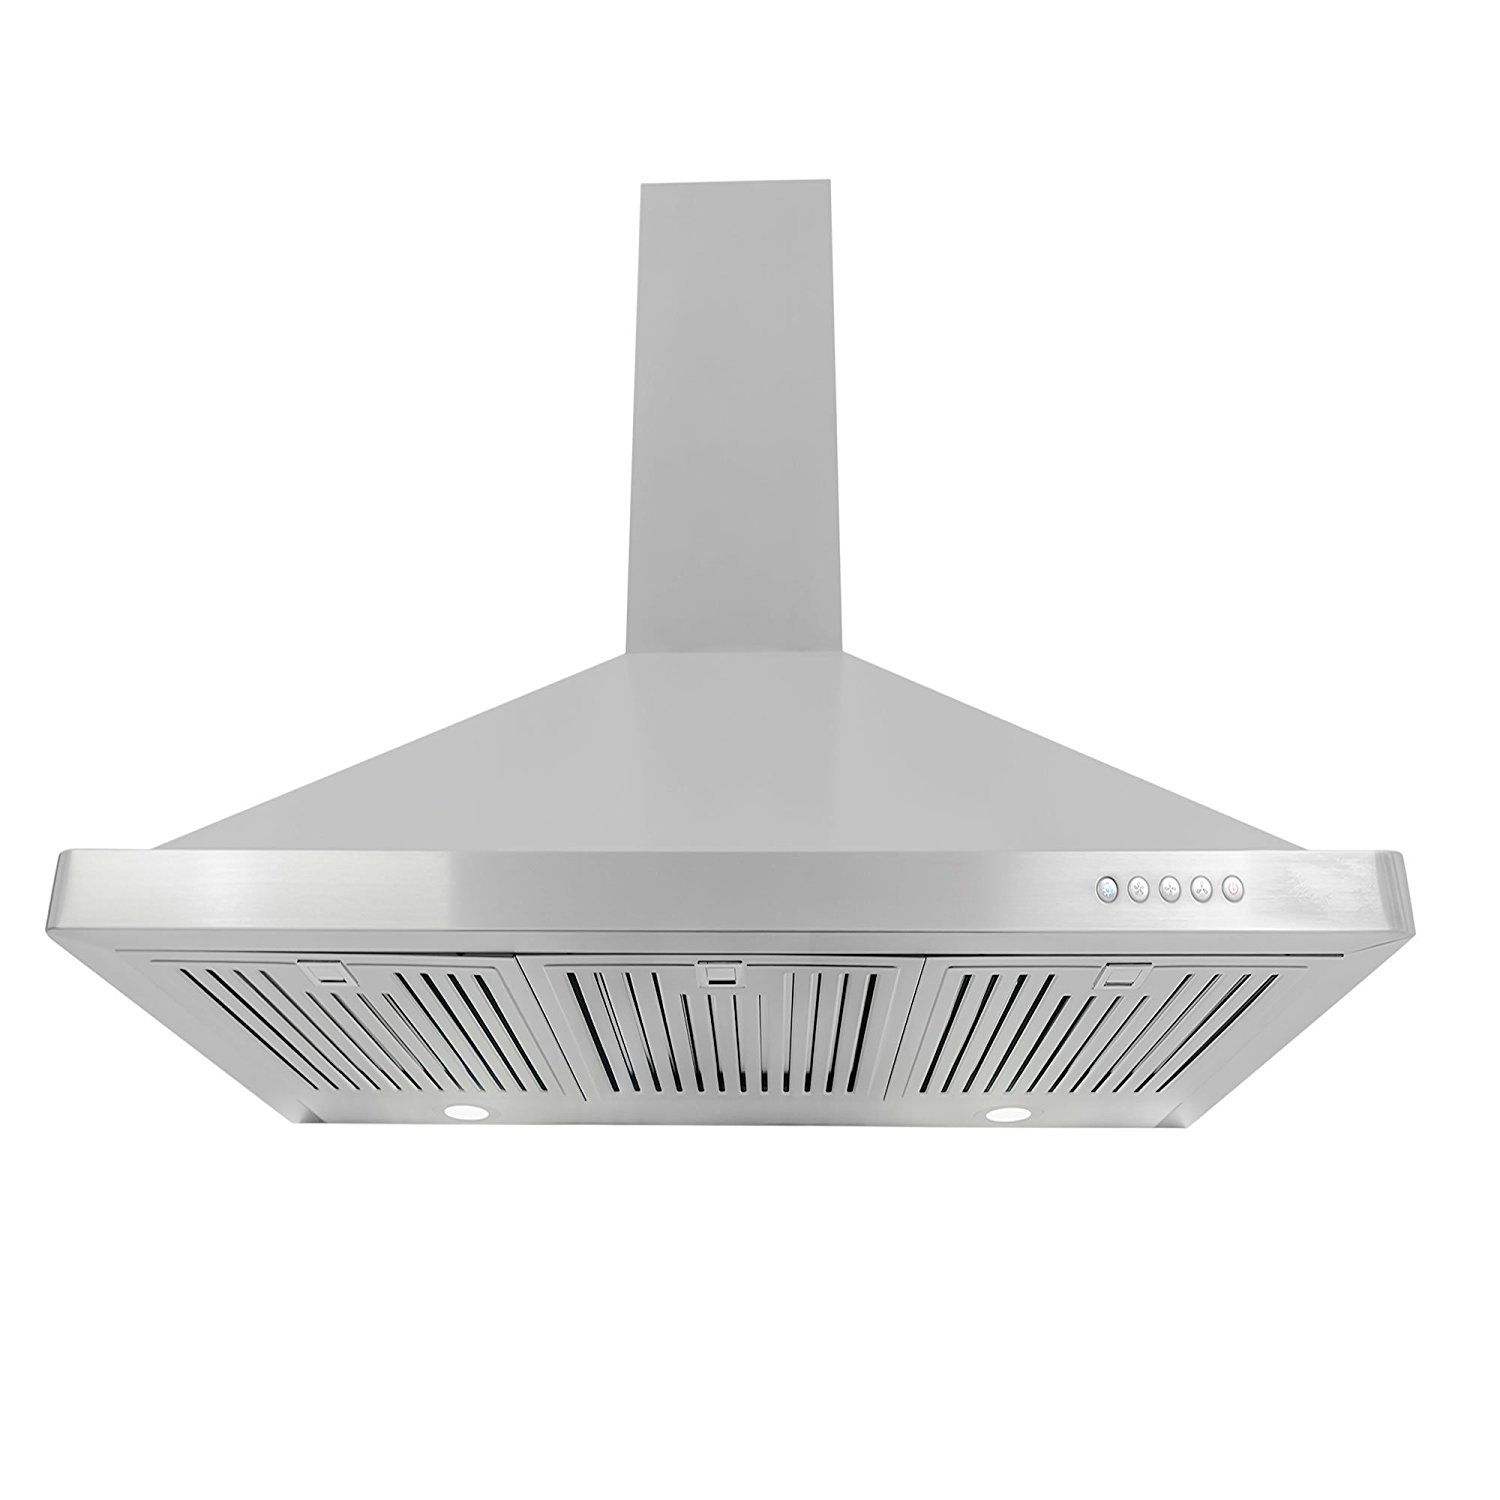 Amazon Com Cosmo 63190ft900 Stainless Steel Wall Mount Range Hood Appliances Wall Mount Range Hood Range Hood Stainless Steel Range Hood